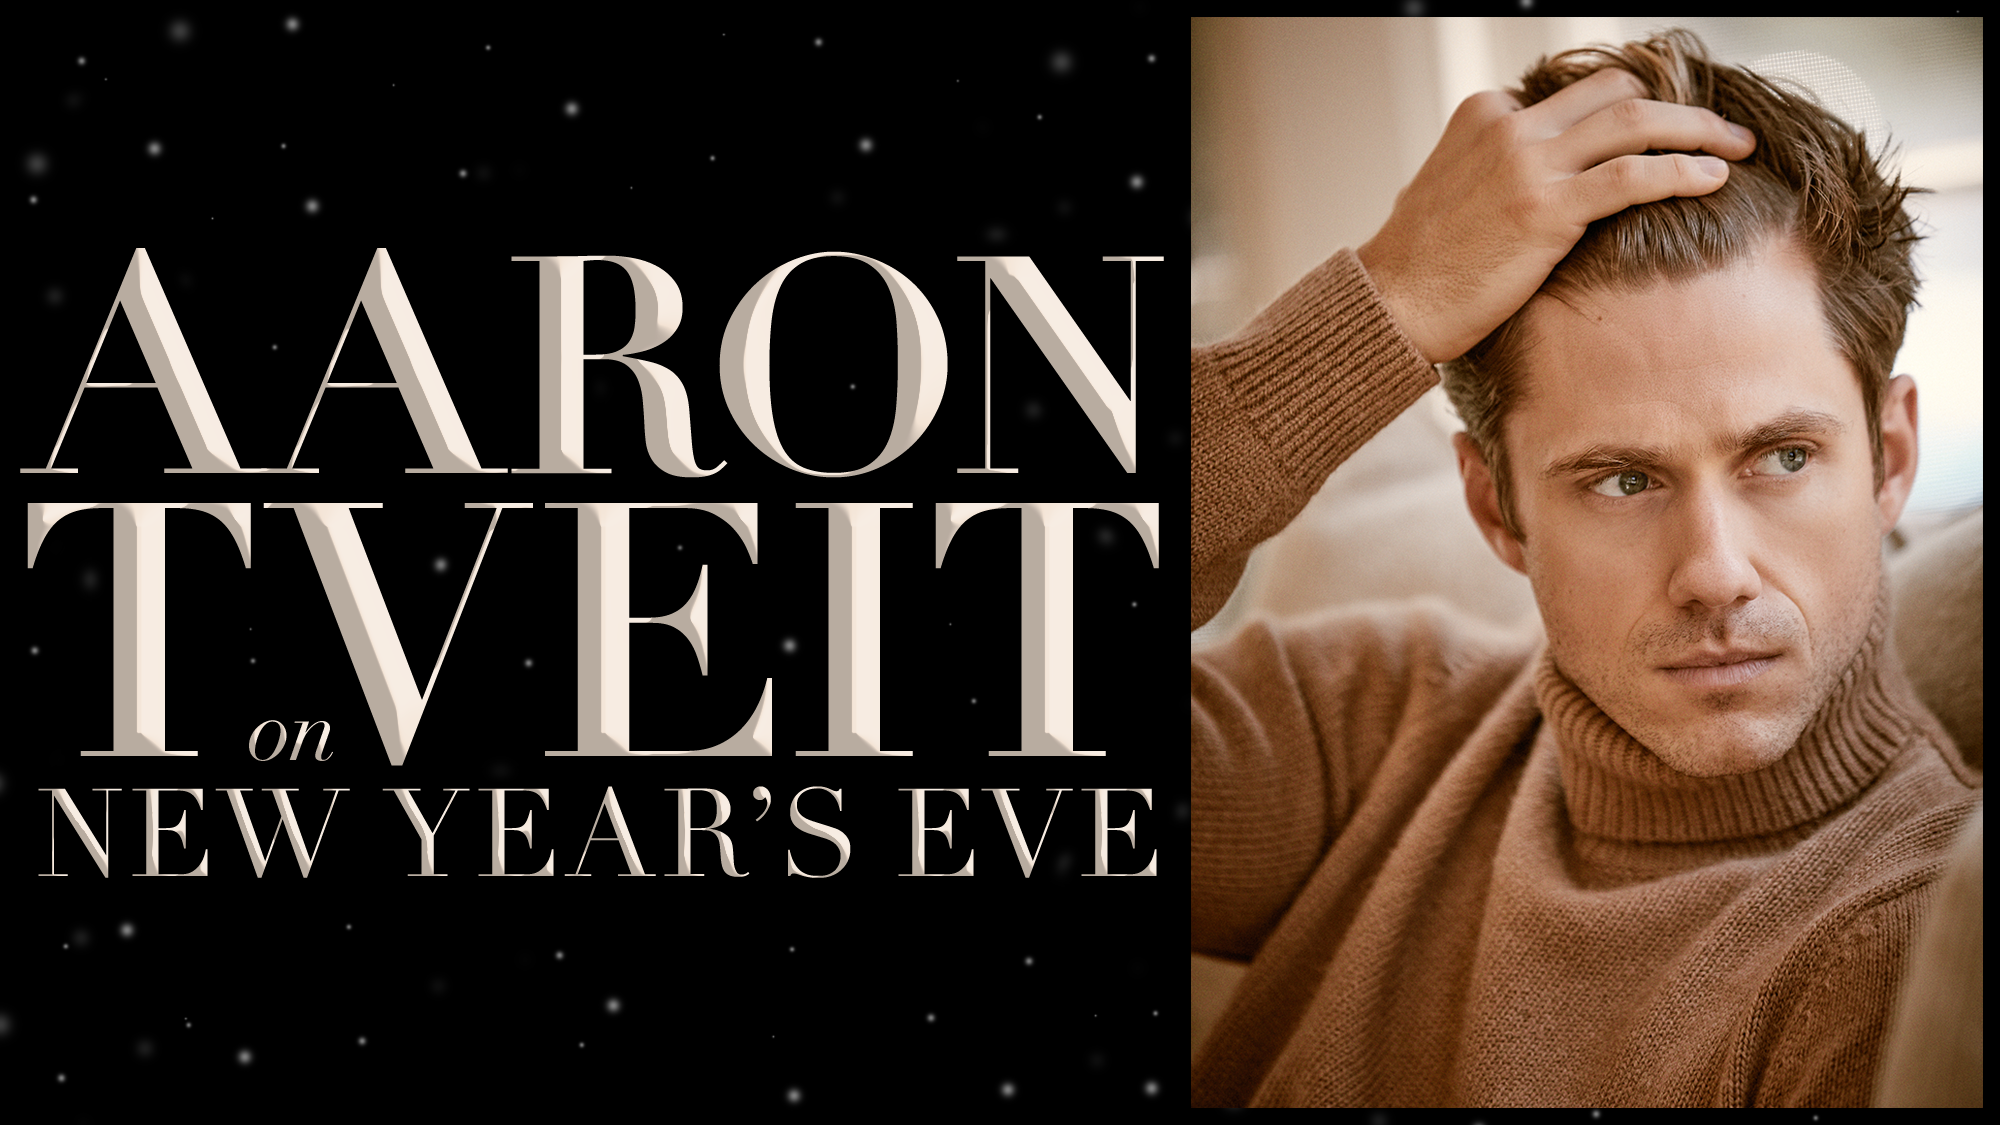 Aaron Tveit On New Years Eve